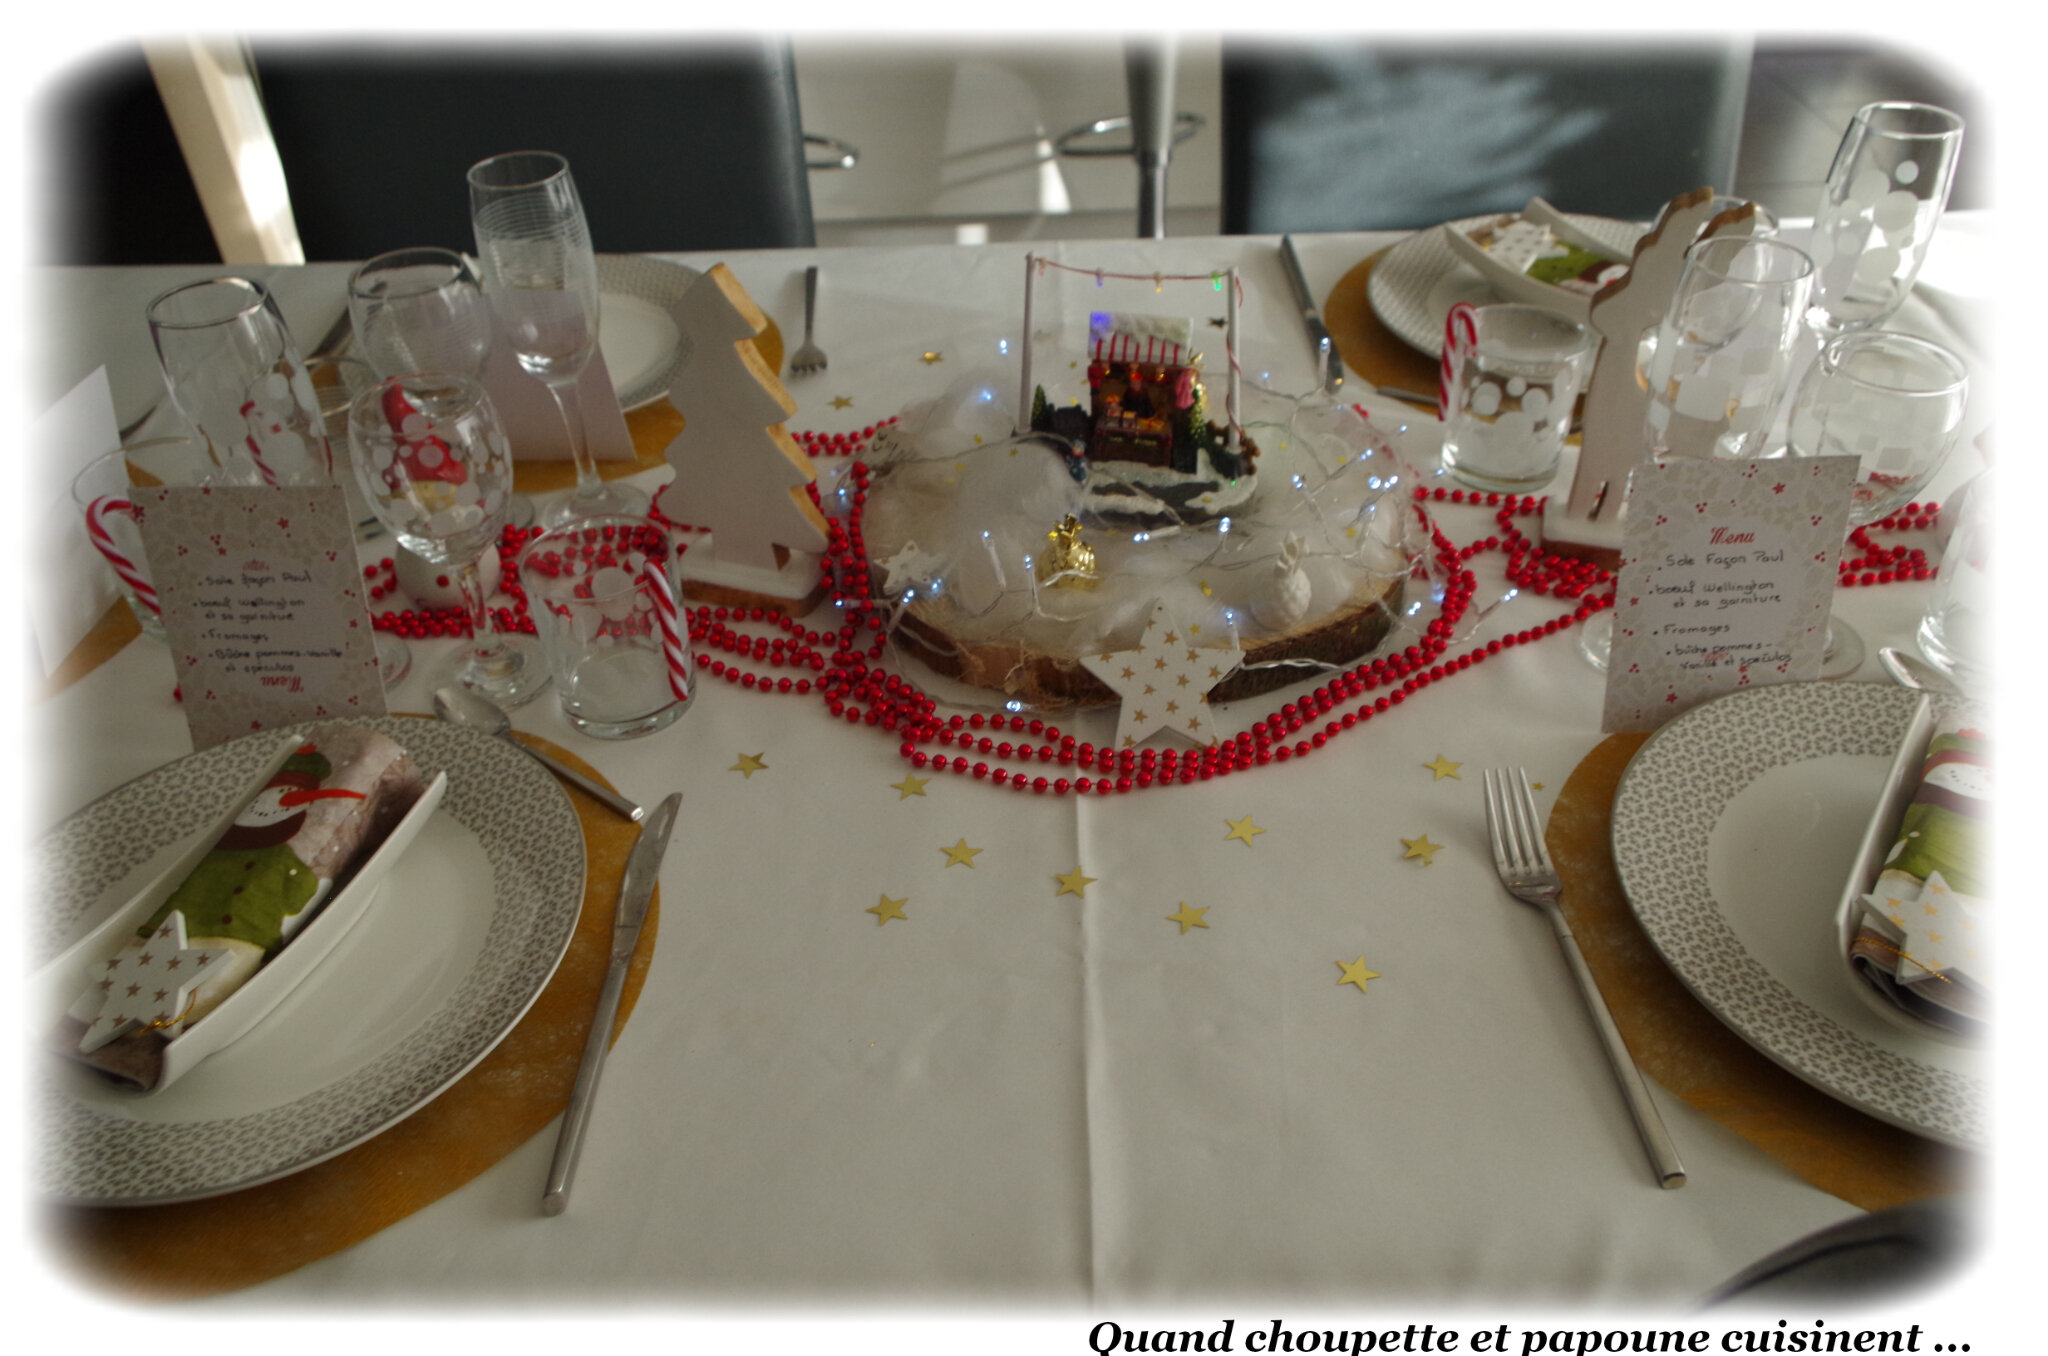 DECORATIONS DE TABLE DU REVEILLON DE NOËL ET DU JOUR